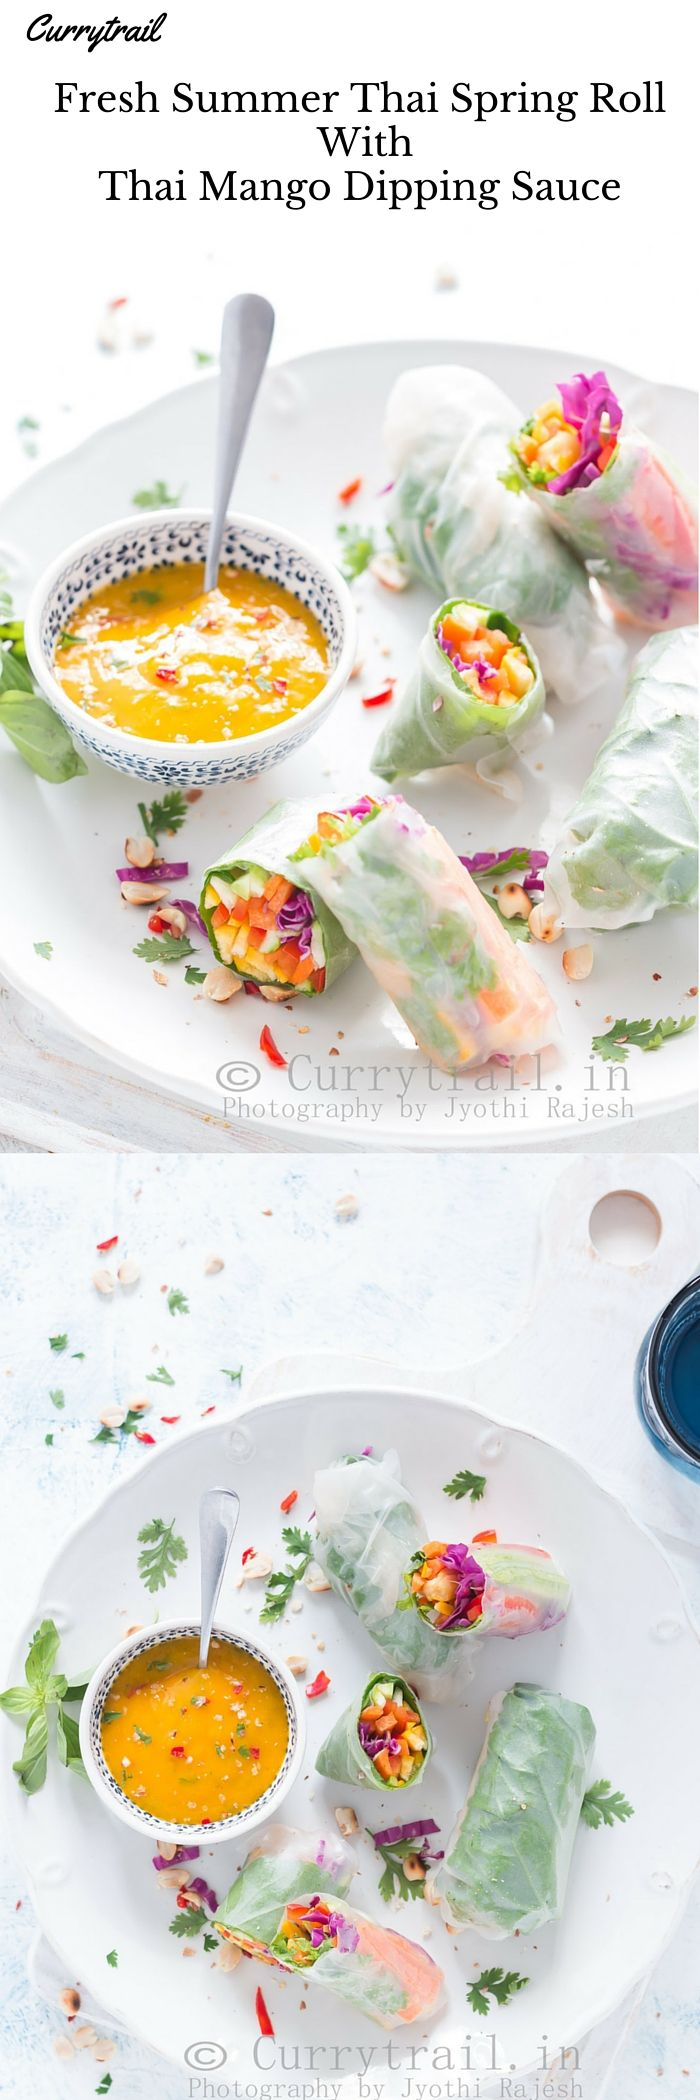 Thai Spring Roll with Thai Mango Dipping Sauce